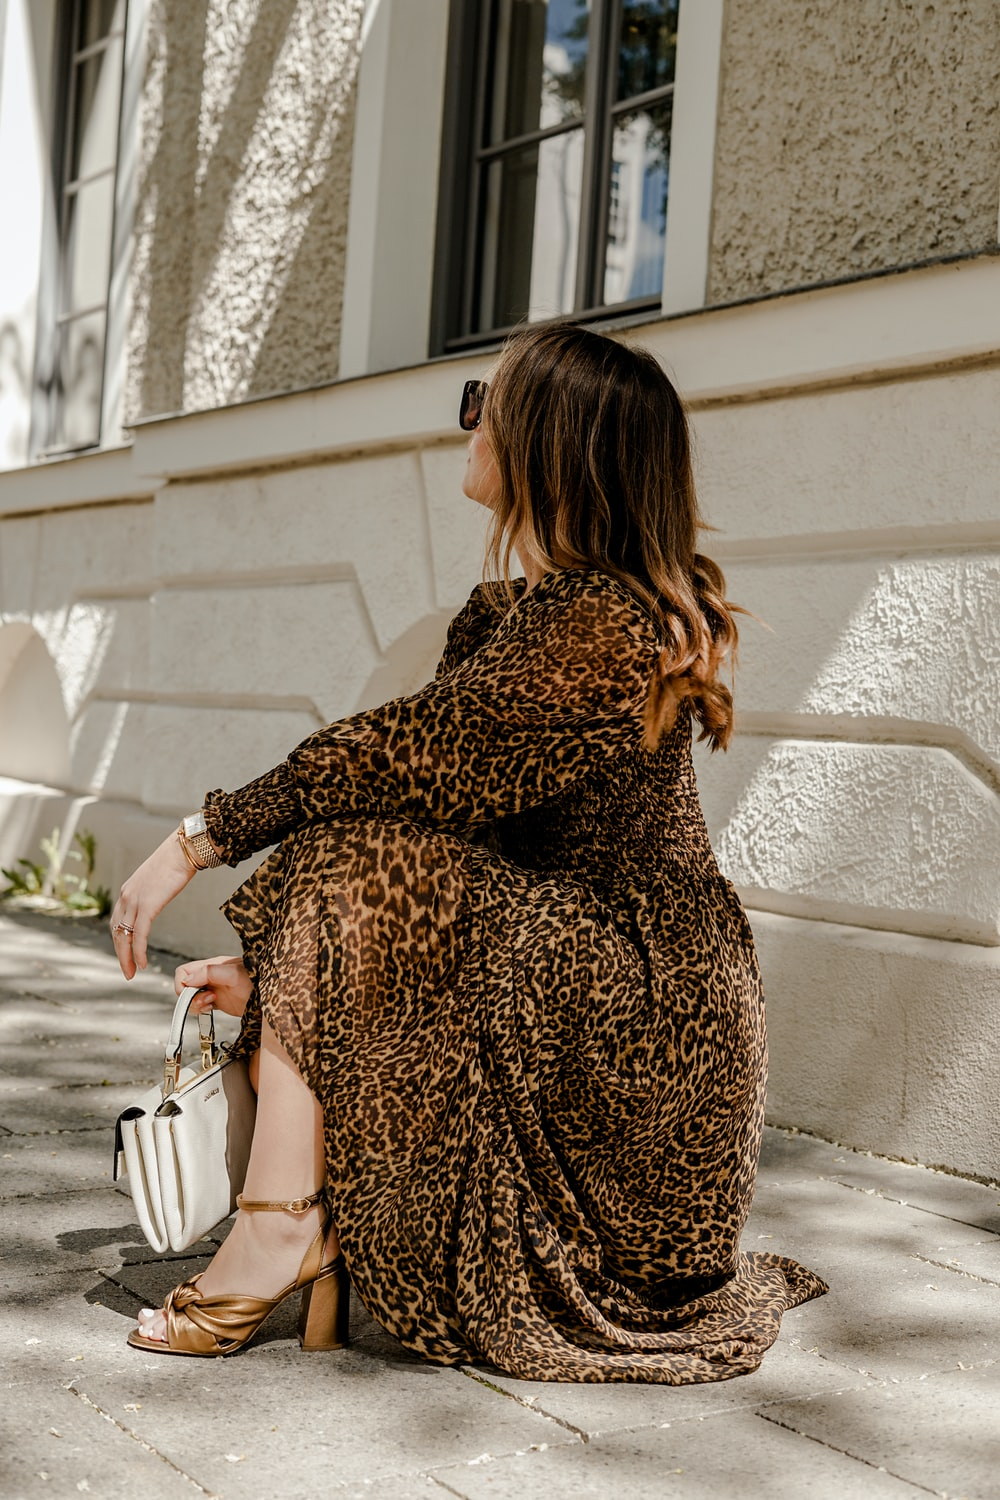 woman in brown and black leopard print dress holding white leather handbag